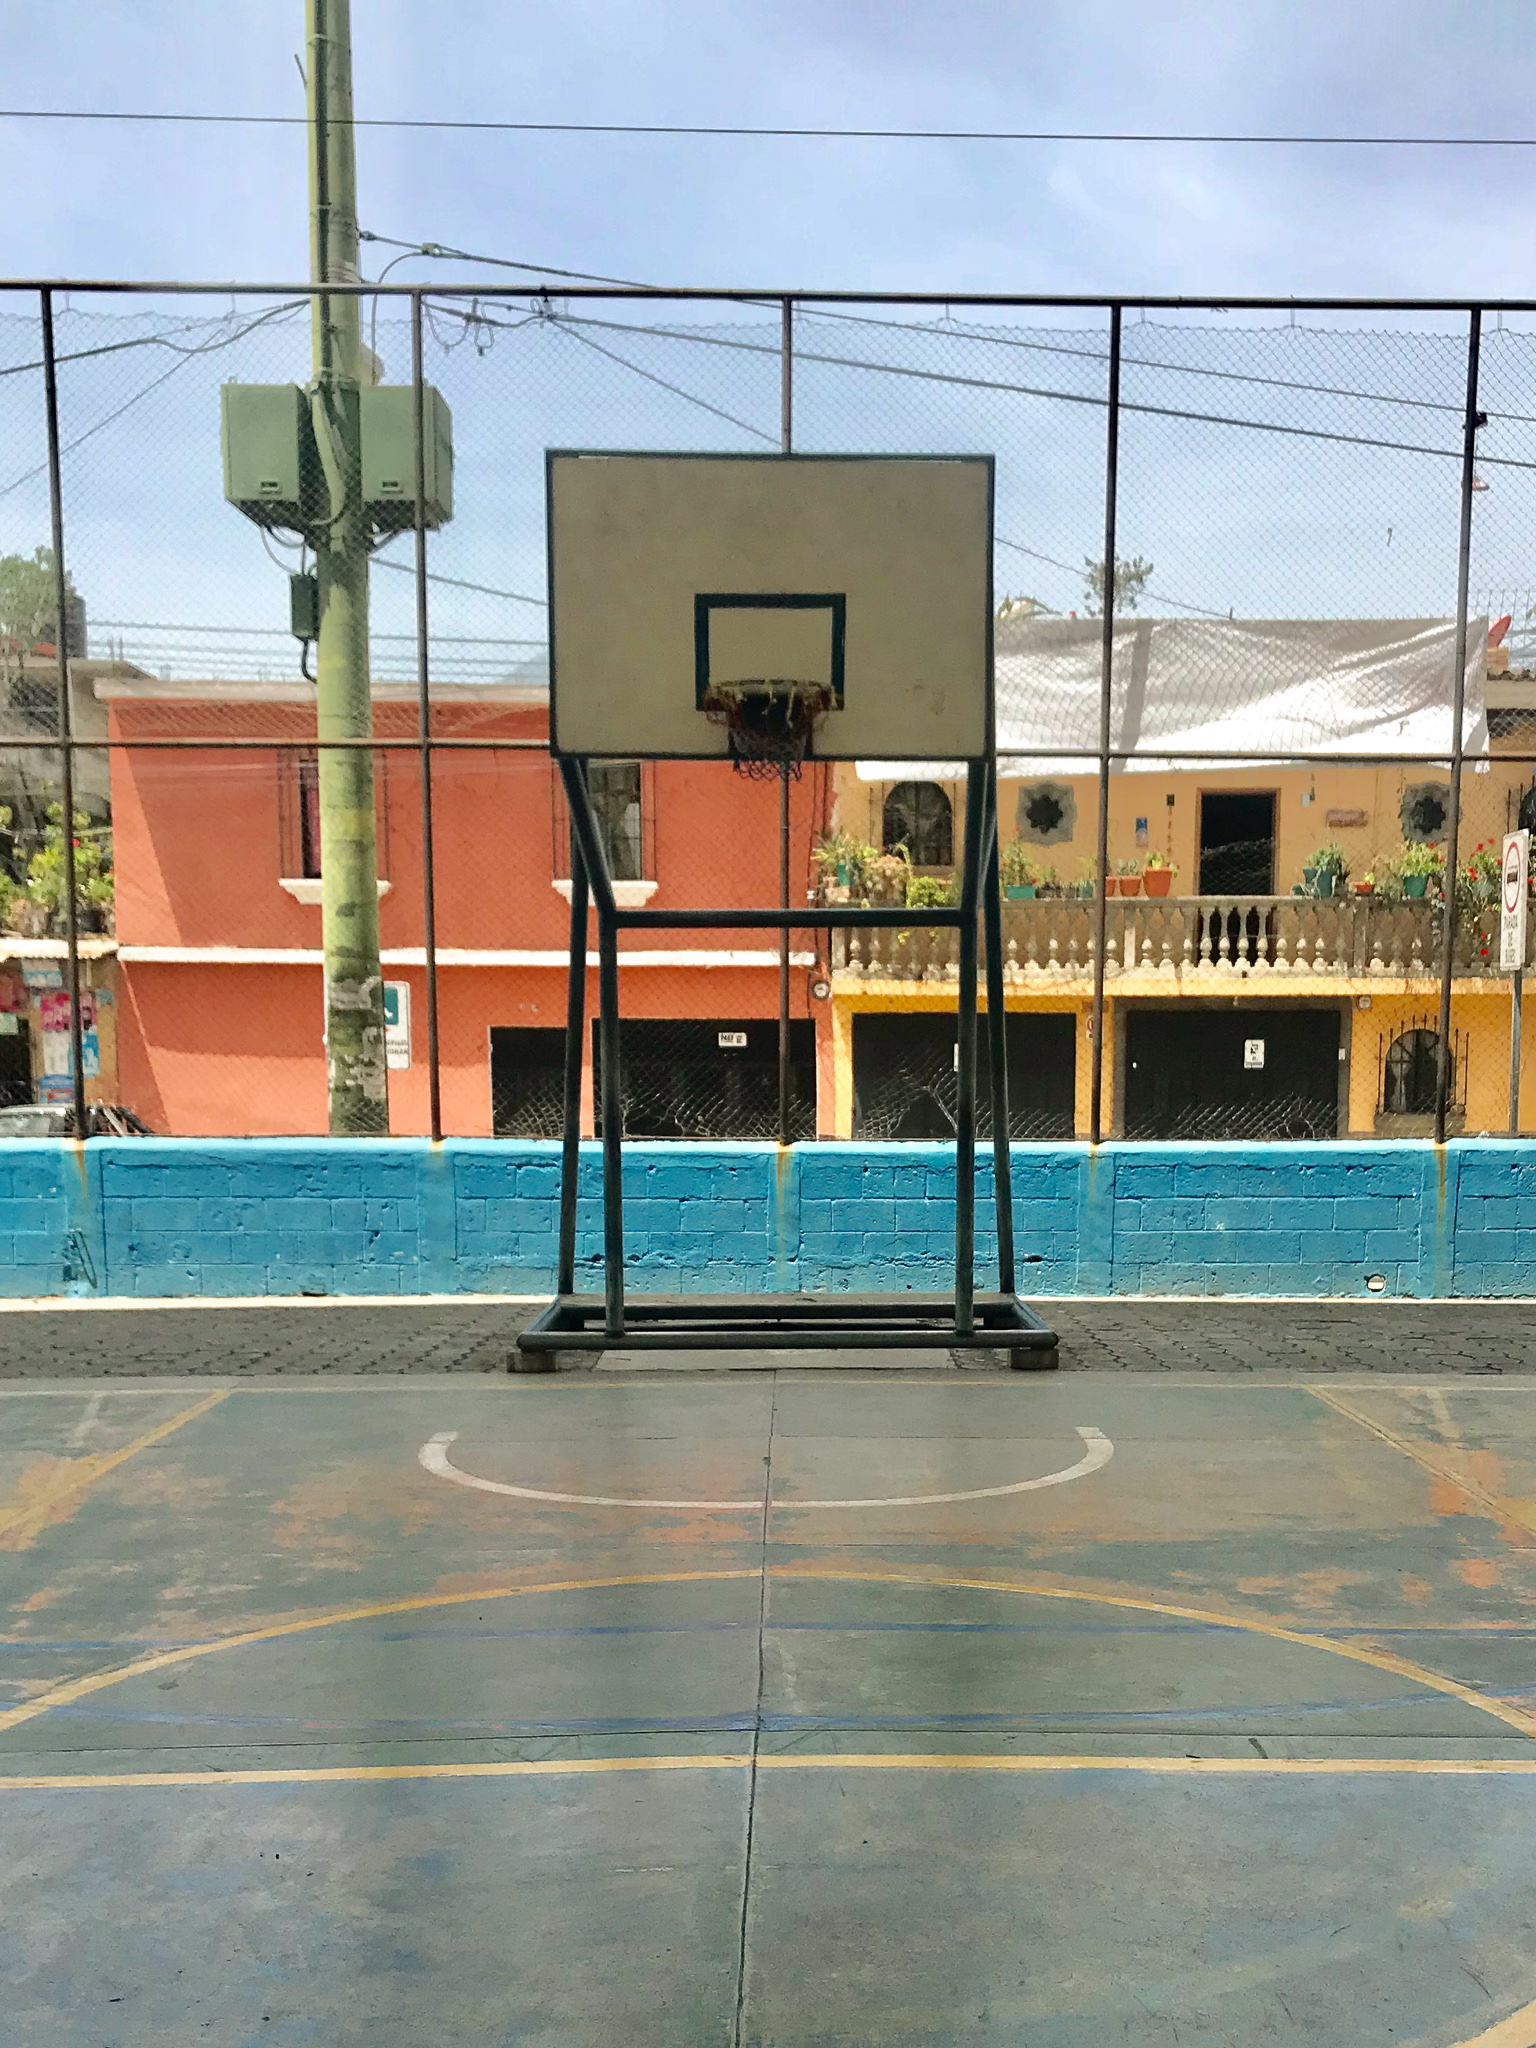 Guatemala basketball hoops